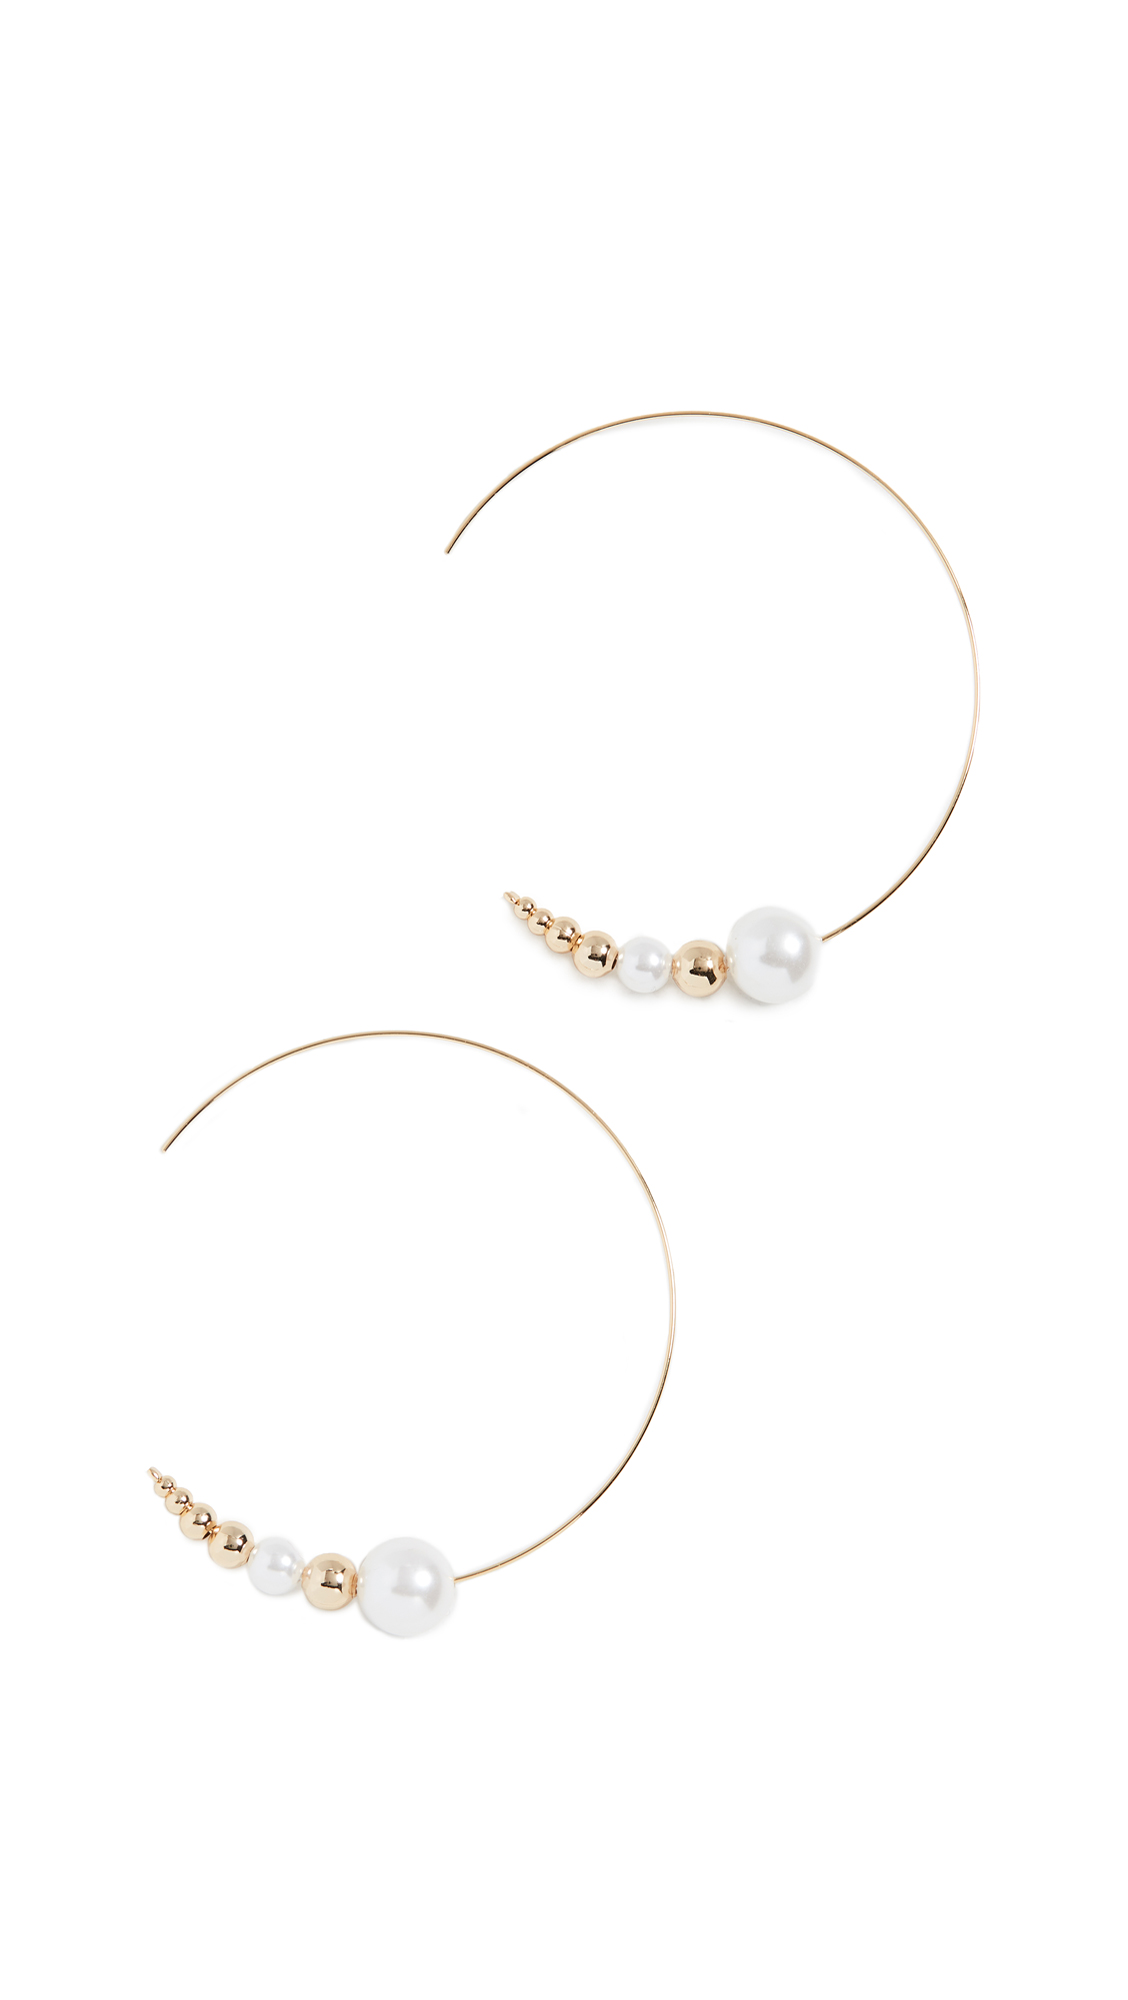 Jules Smith Pearl Threader Earrings In Gold/Pearl